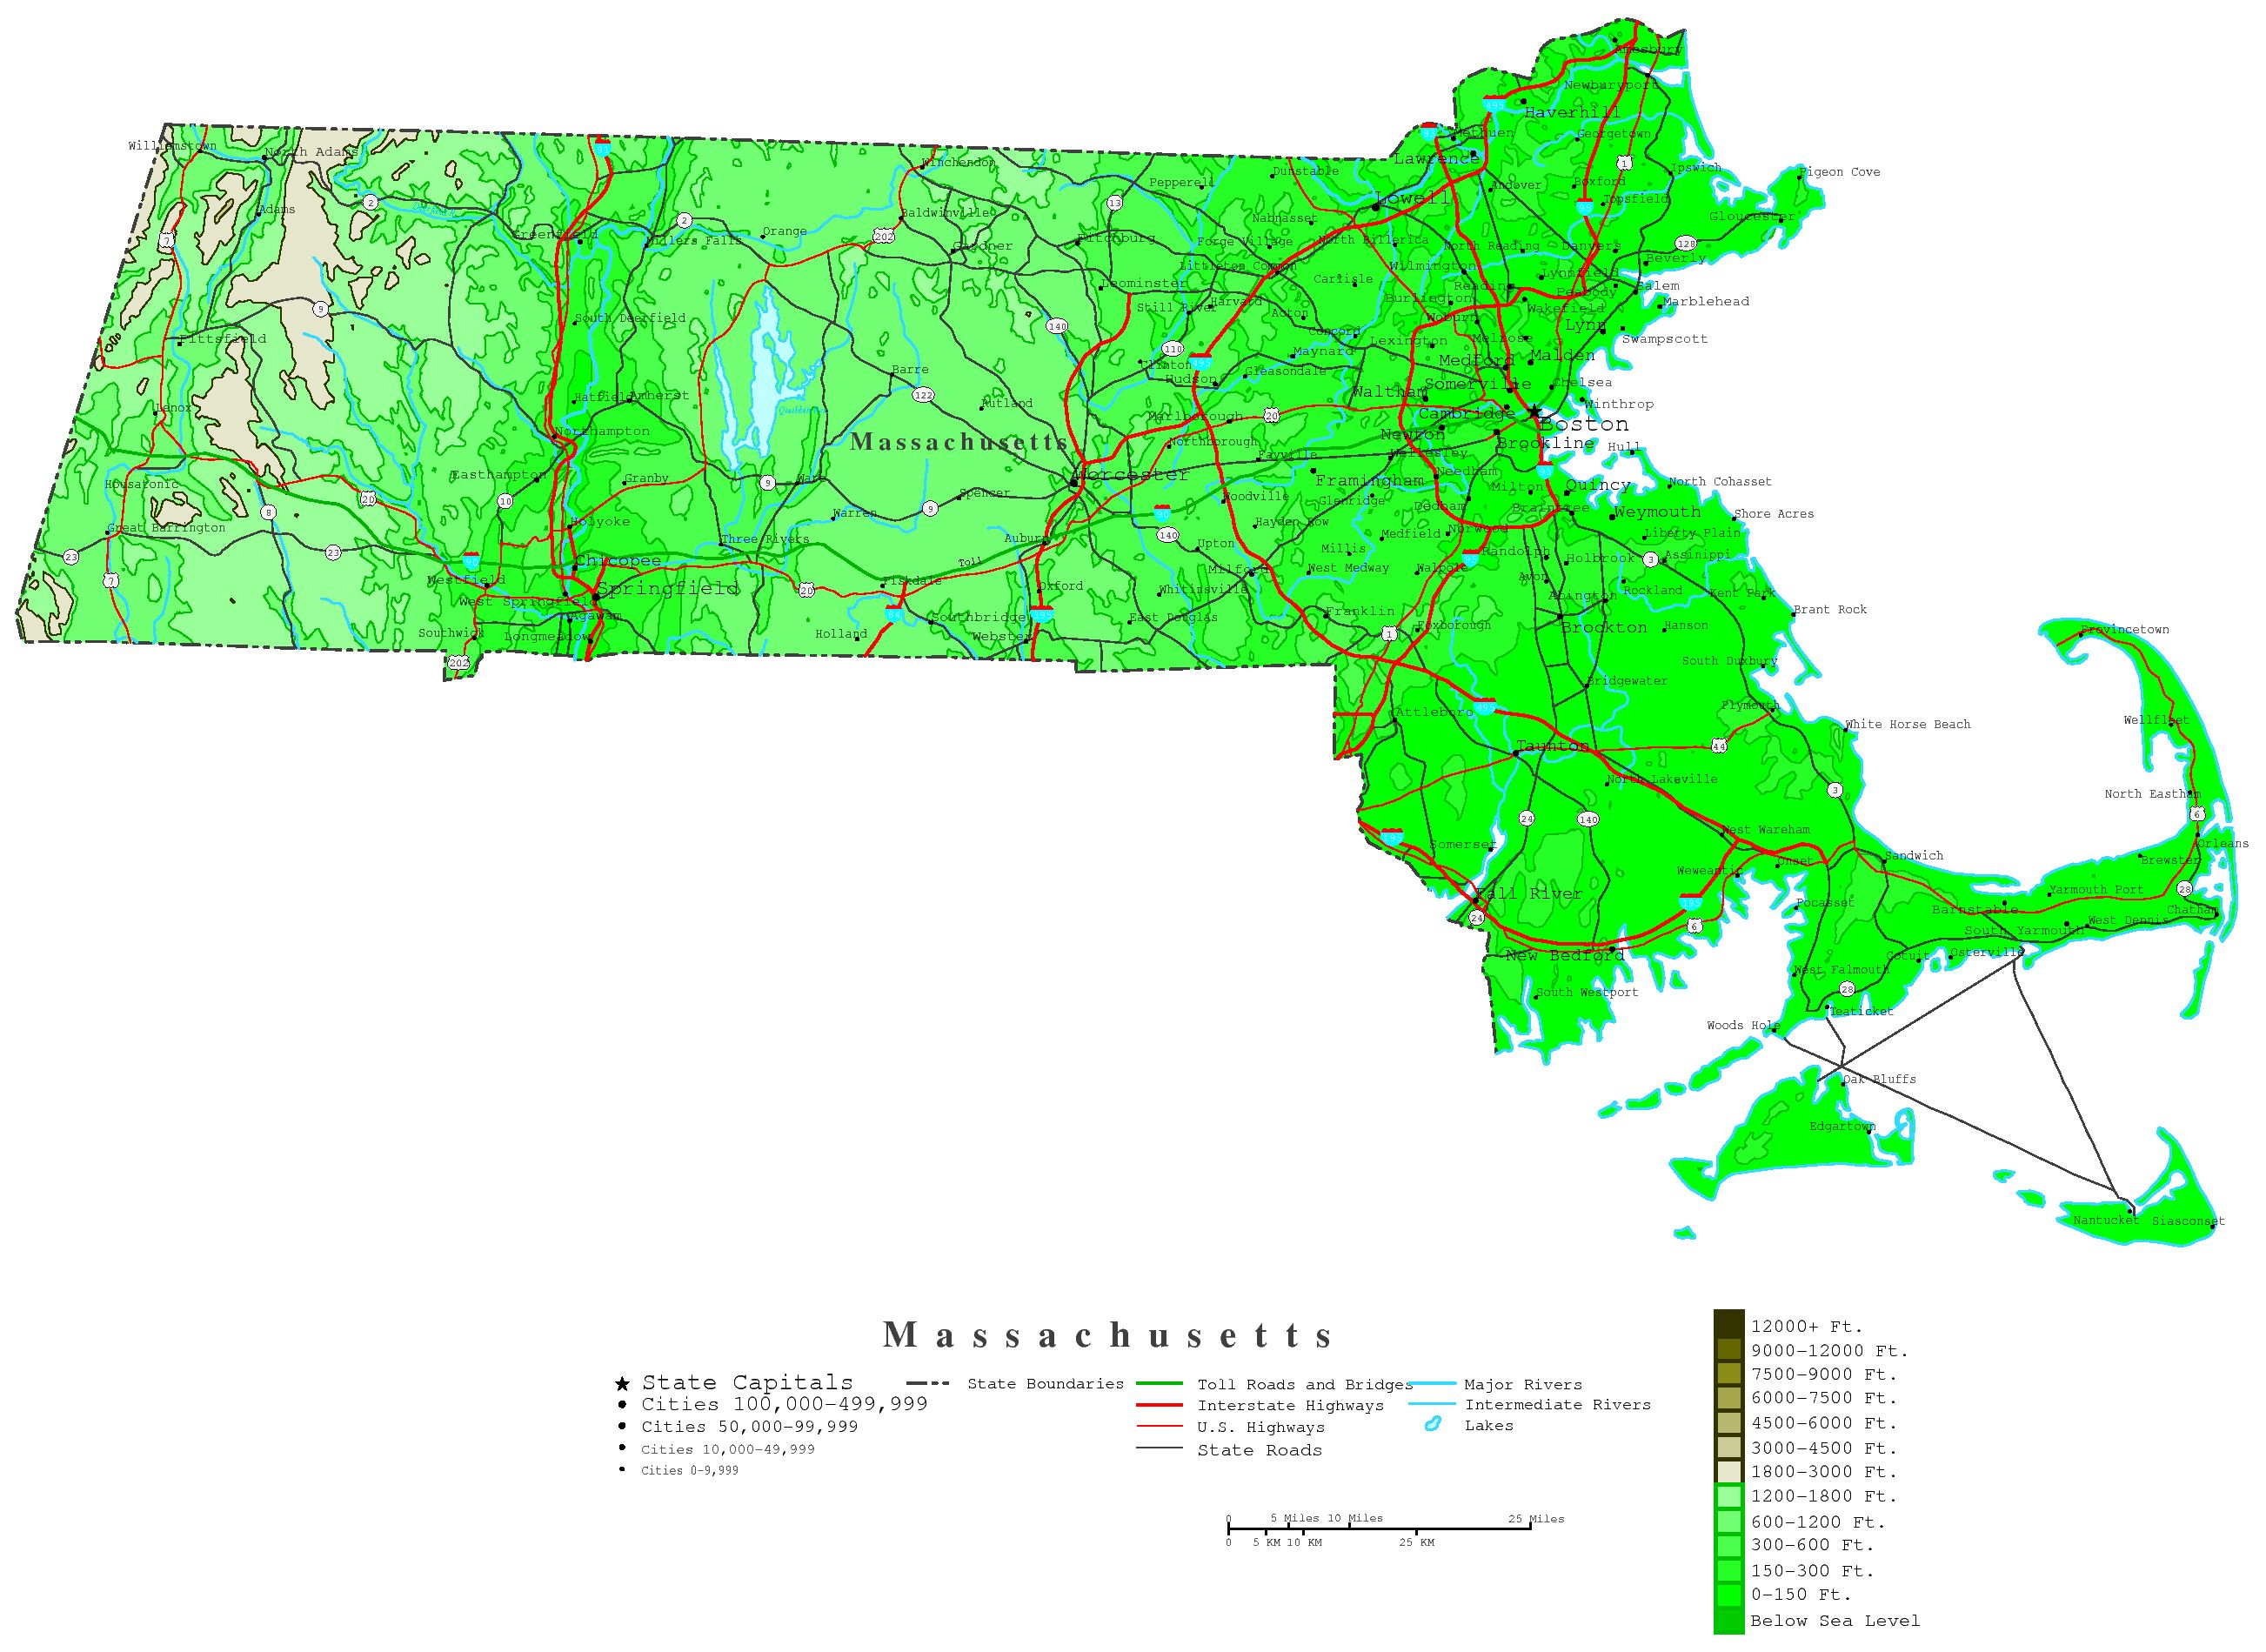 Attractive Cape Cod Elevation Map Part - 12: Contour Elevation Map Of Massachusetts